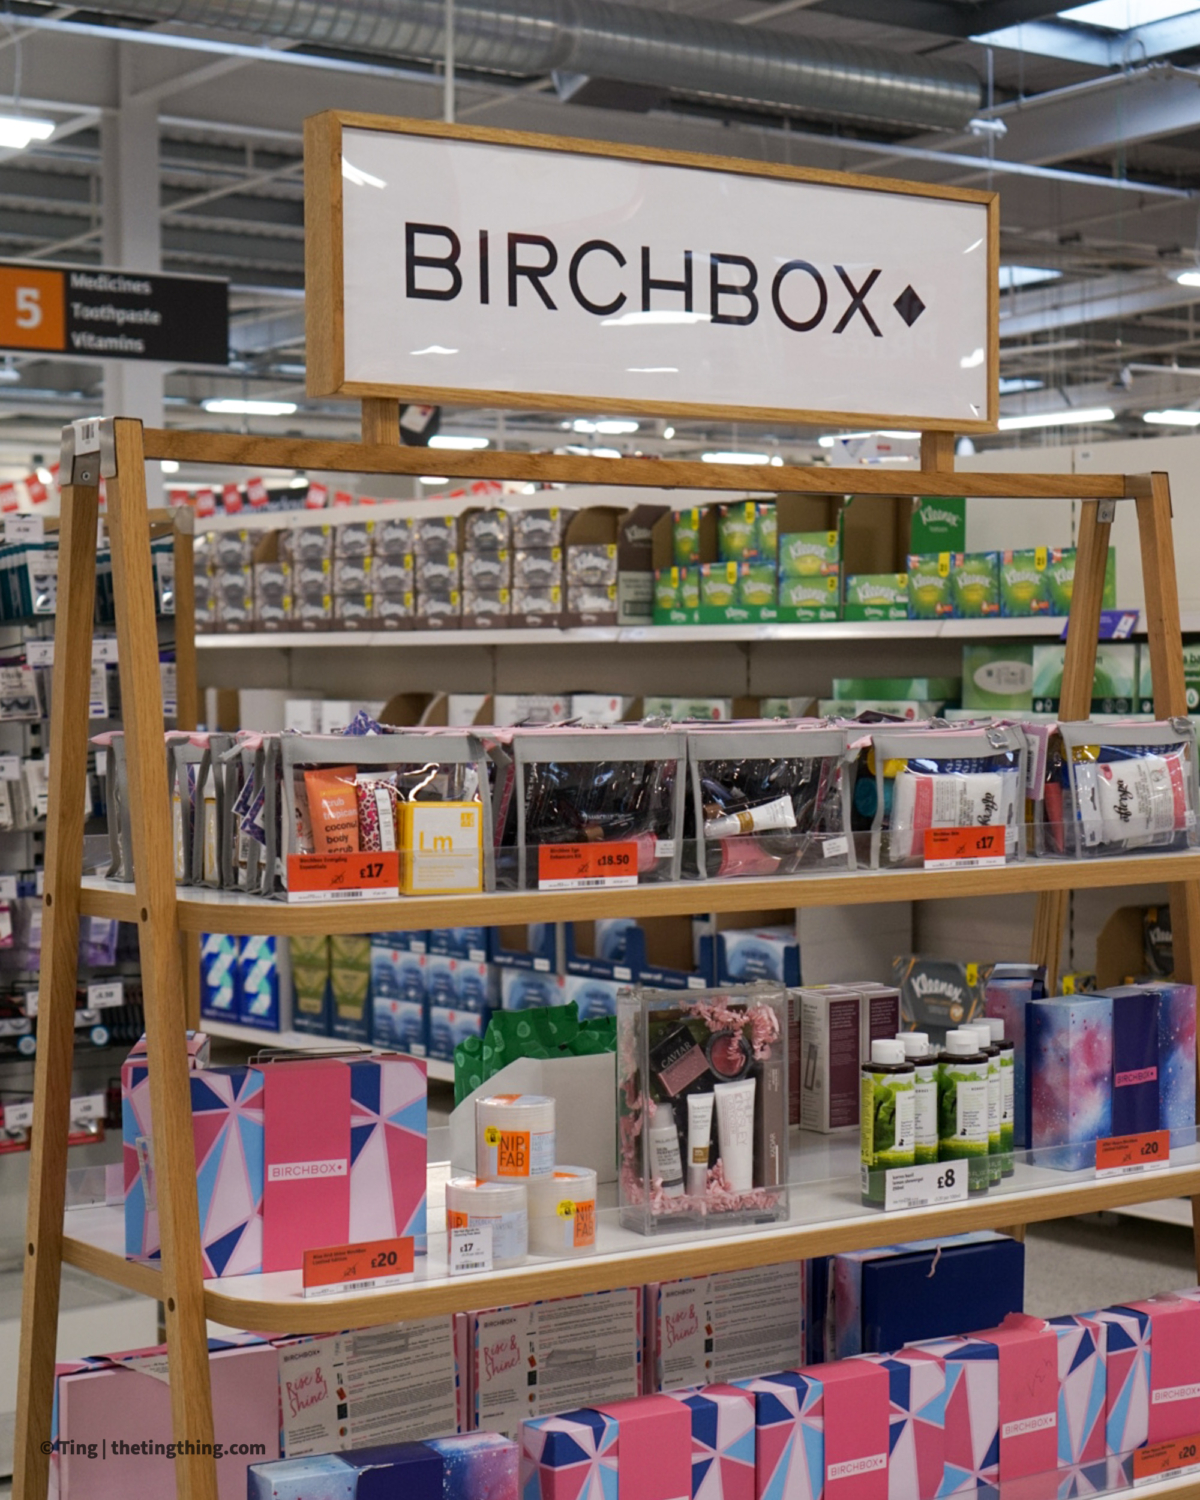 Sainsburys display for Birchbox products